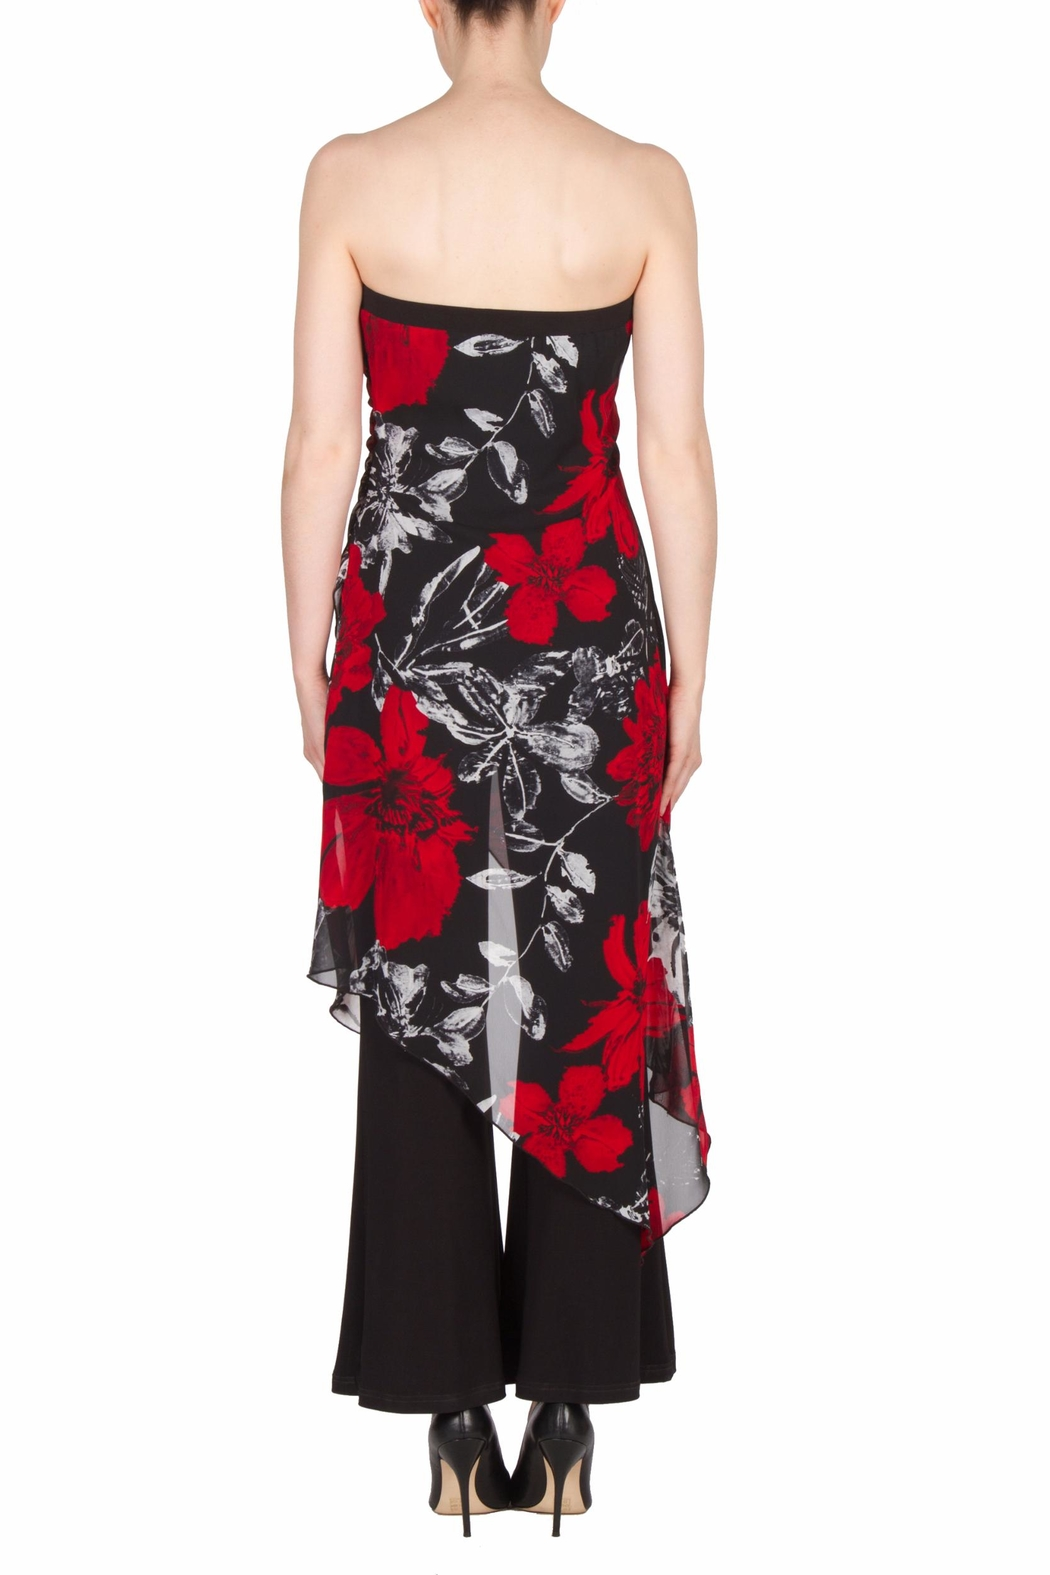 Joseph Ribkoff Strapless Floral Jumpsuit - Front Full Image